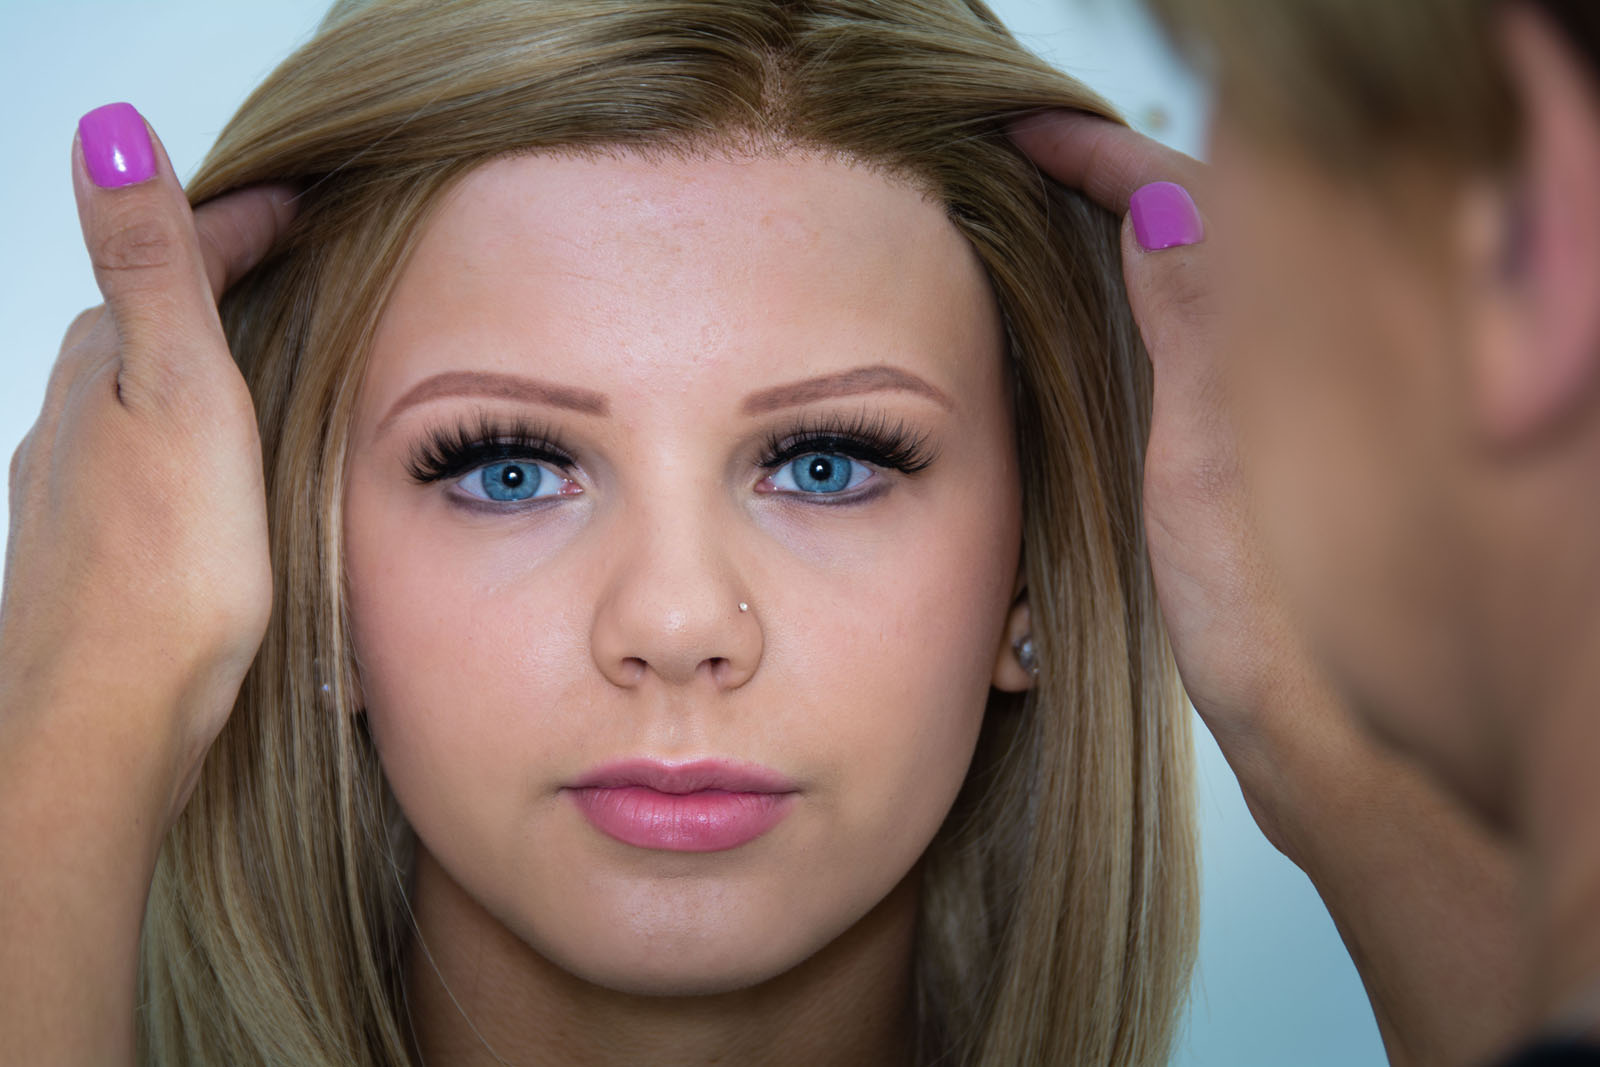 Alopecia sufferer Charley photographed by Bout Yeh photographers Belfast - press release page